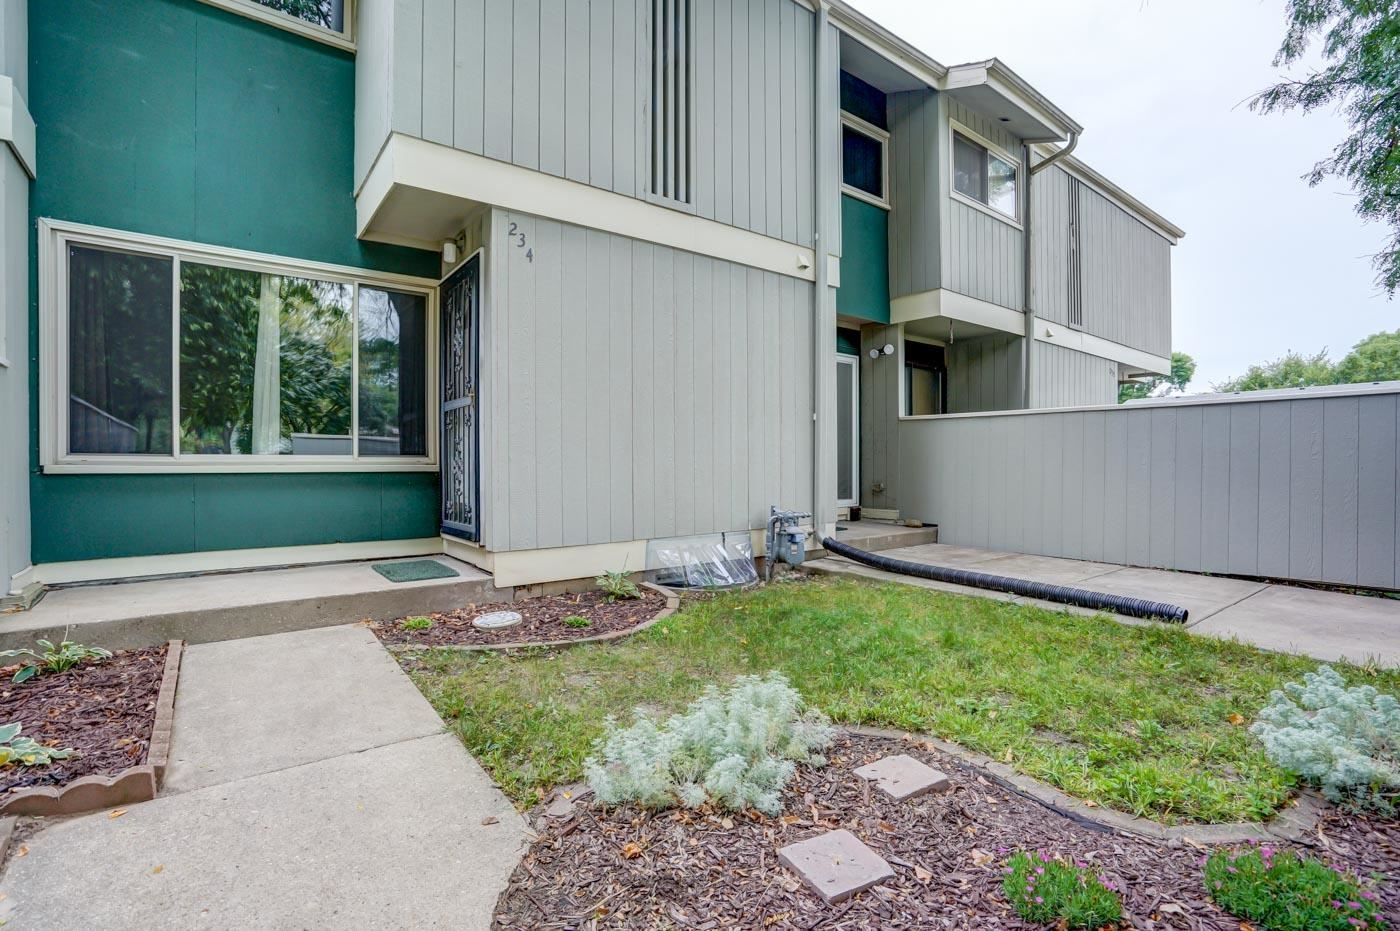 234 EAST BLUFF, Madison, WI 53704-2359 - #: 1919241